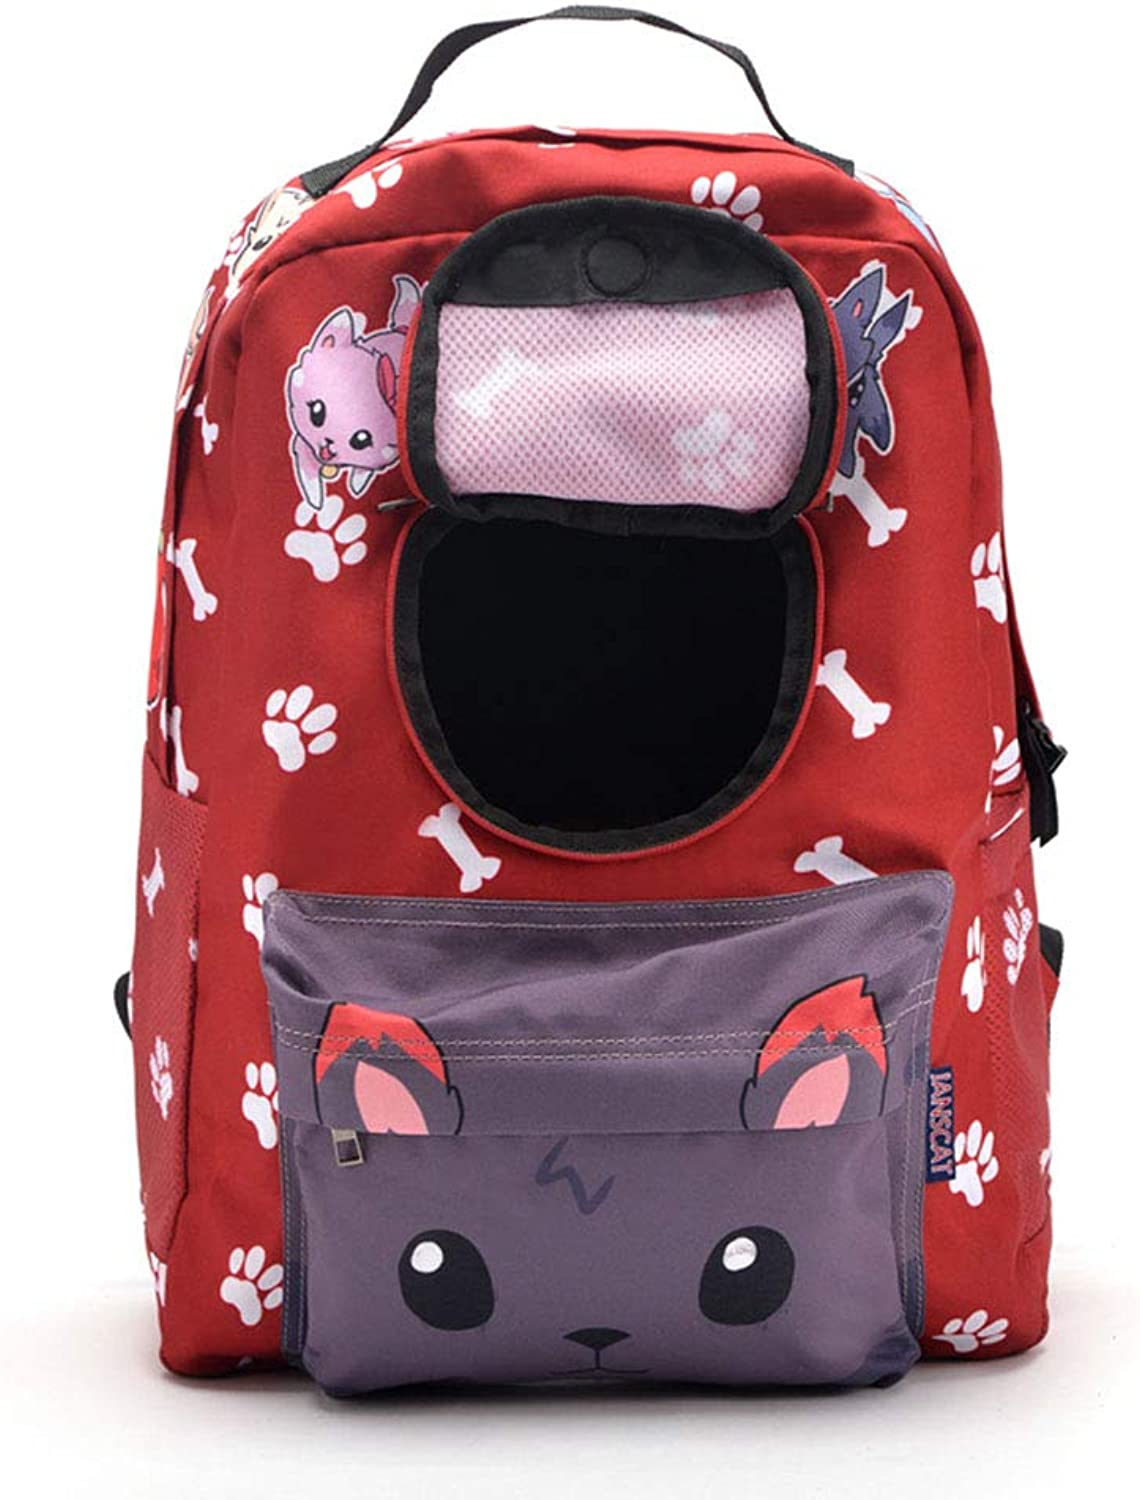 Pet Backpack Dog Bag Out Cat Teddy Portable with Chest Back Dog Shoulders Bag Supplies Suitable for Outdoor Bicycle Walking Shopping,1